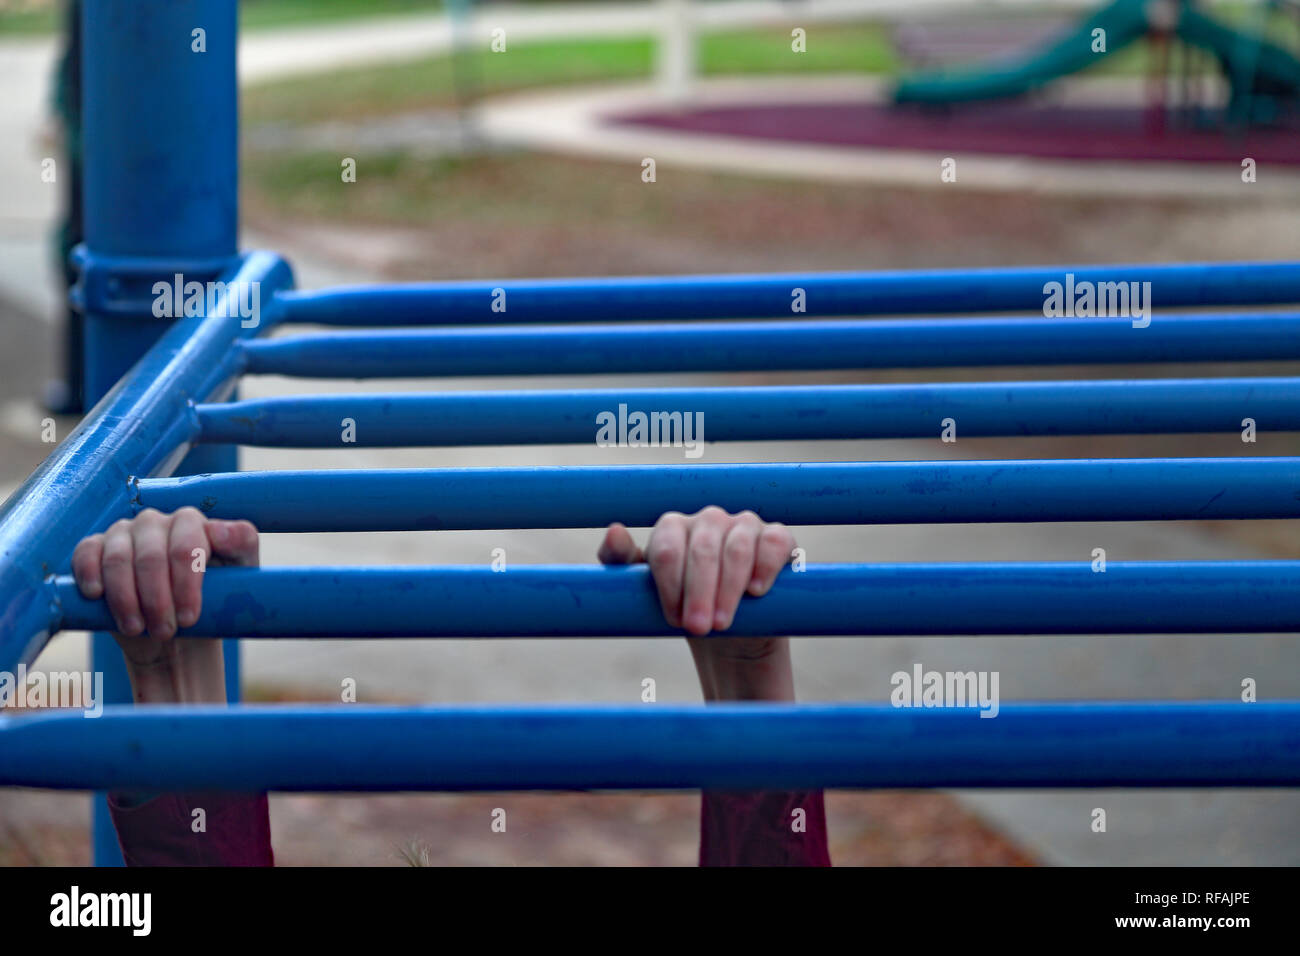 Children's hands gripping monkey bars while playing at the playground - Stock Image